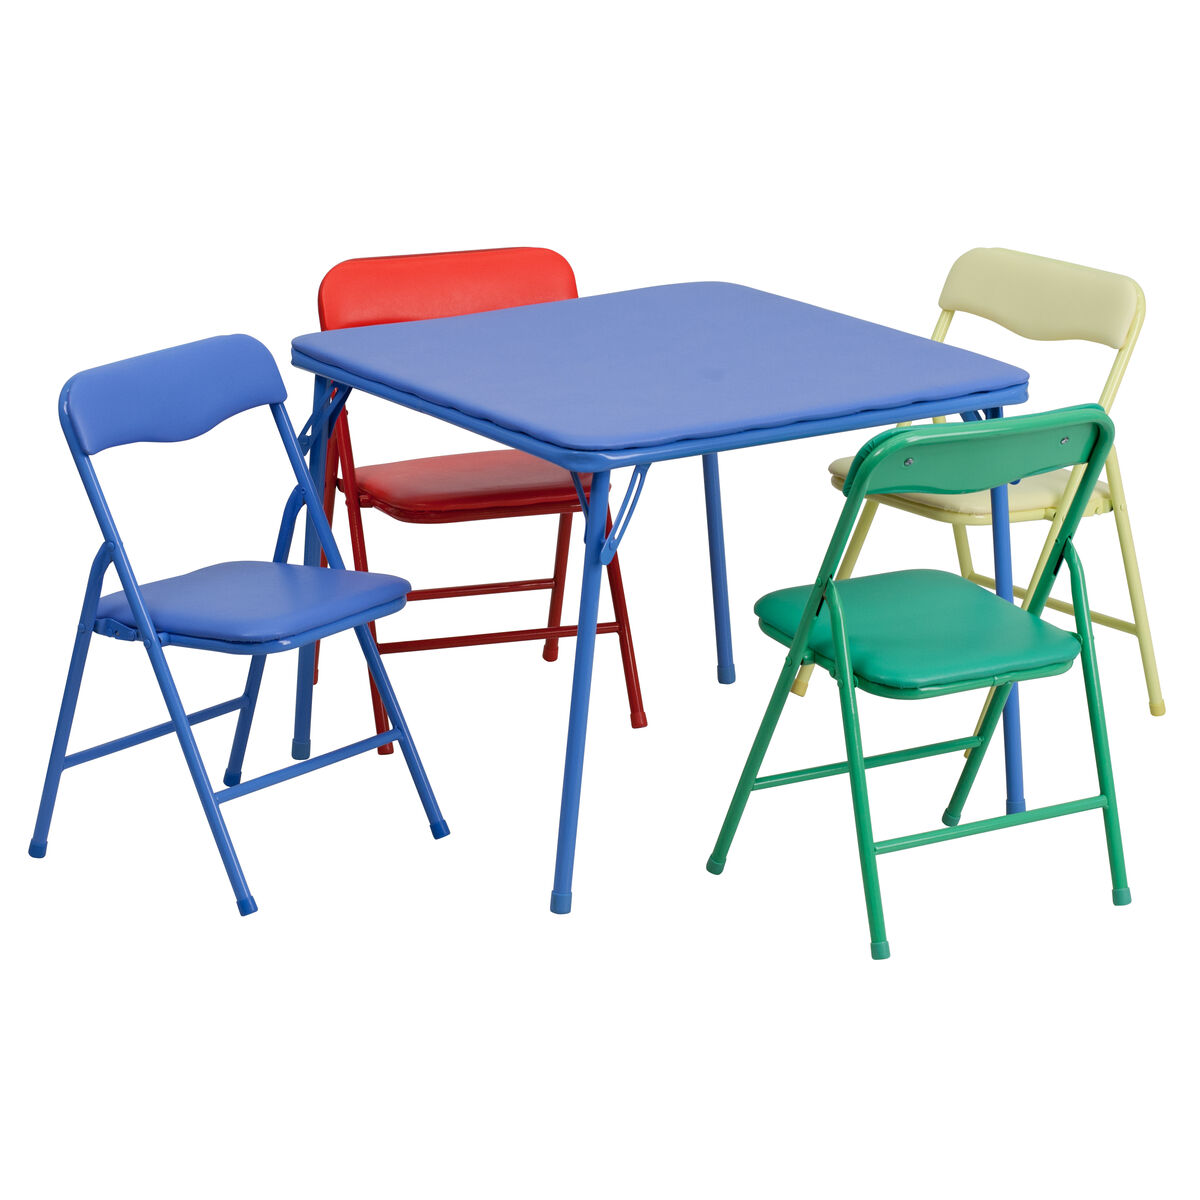 Stupendous Kids Colorful 5 Piece Folding Table And Chair Set Squirreltailoven Fun Painted Chair Ideas Images Squirreltailovenorg